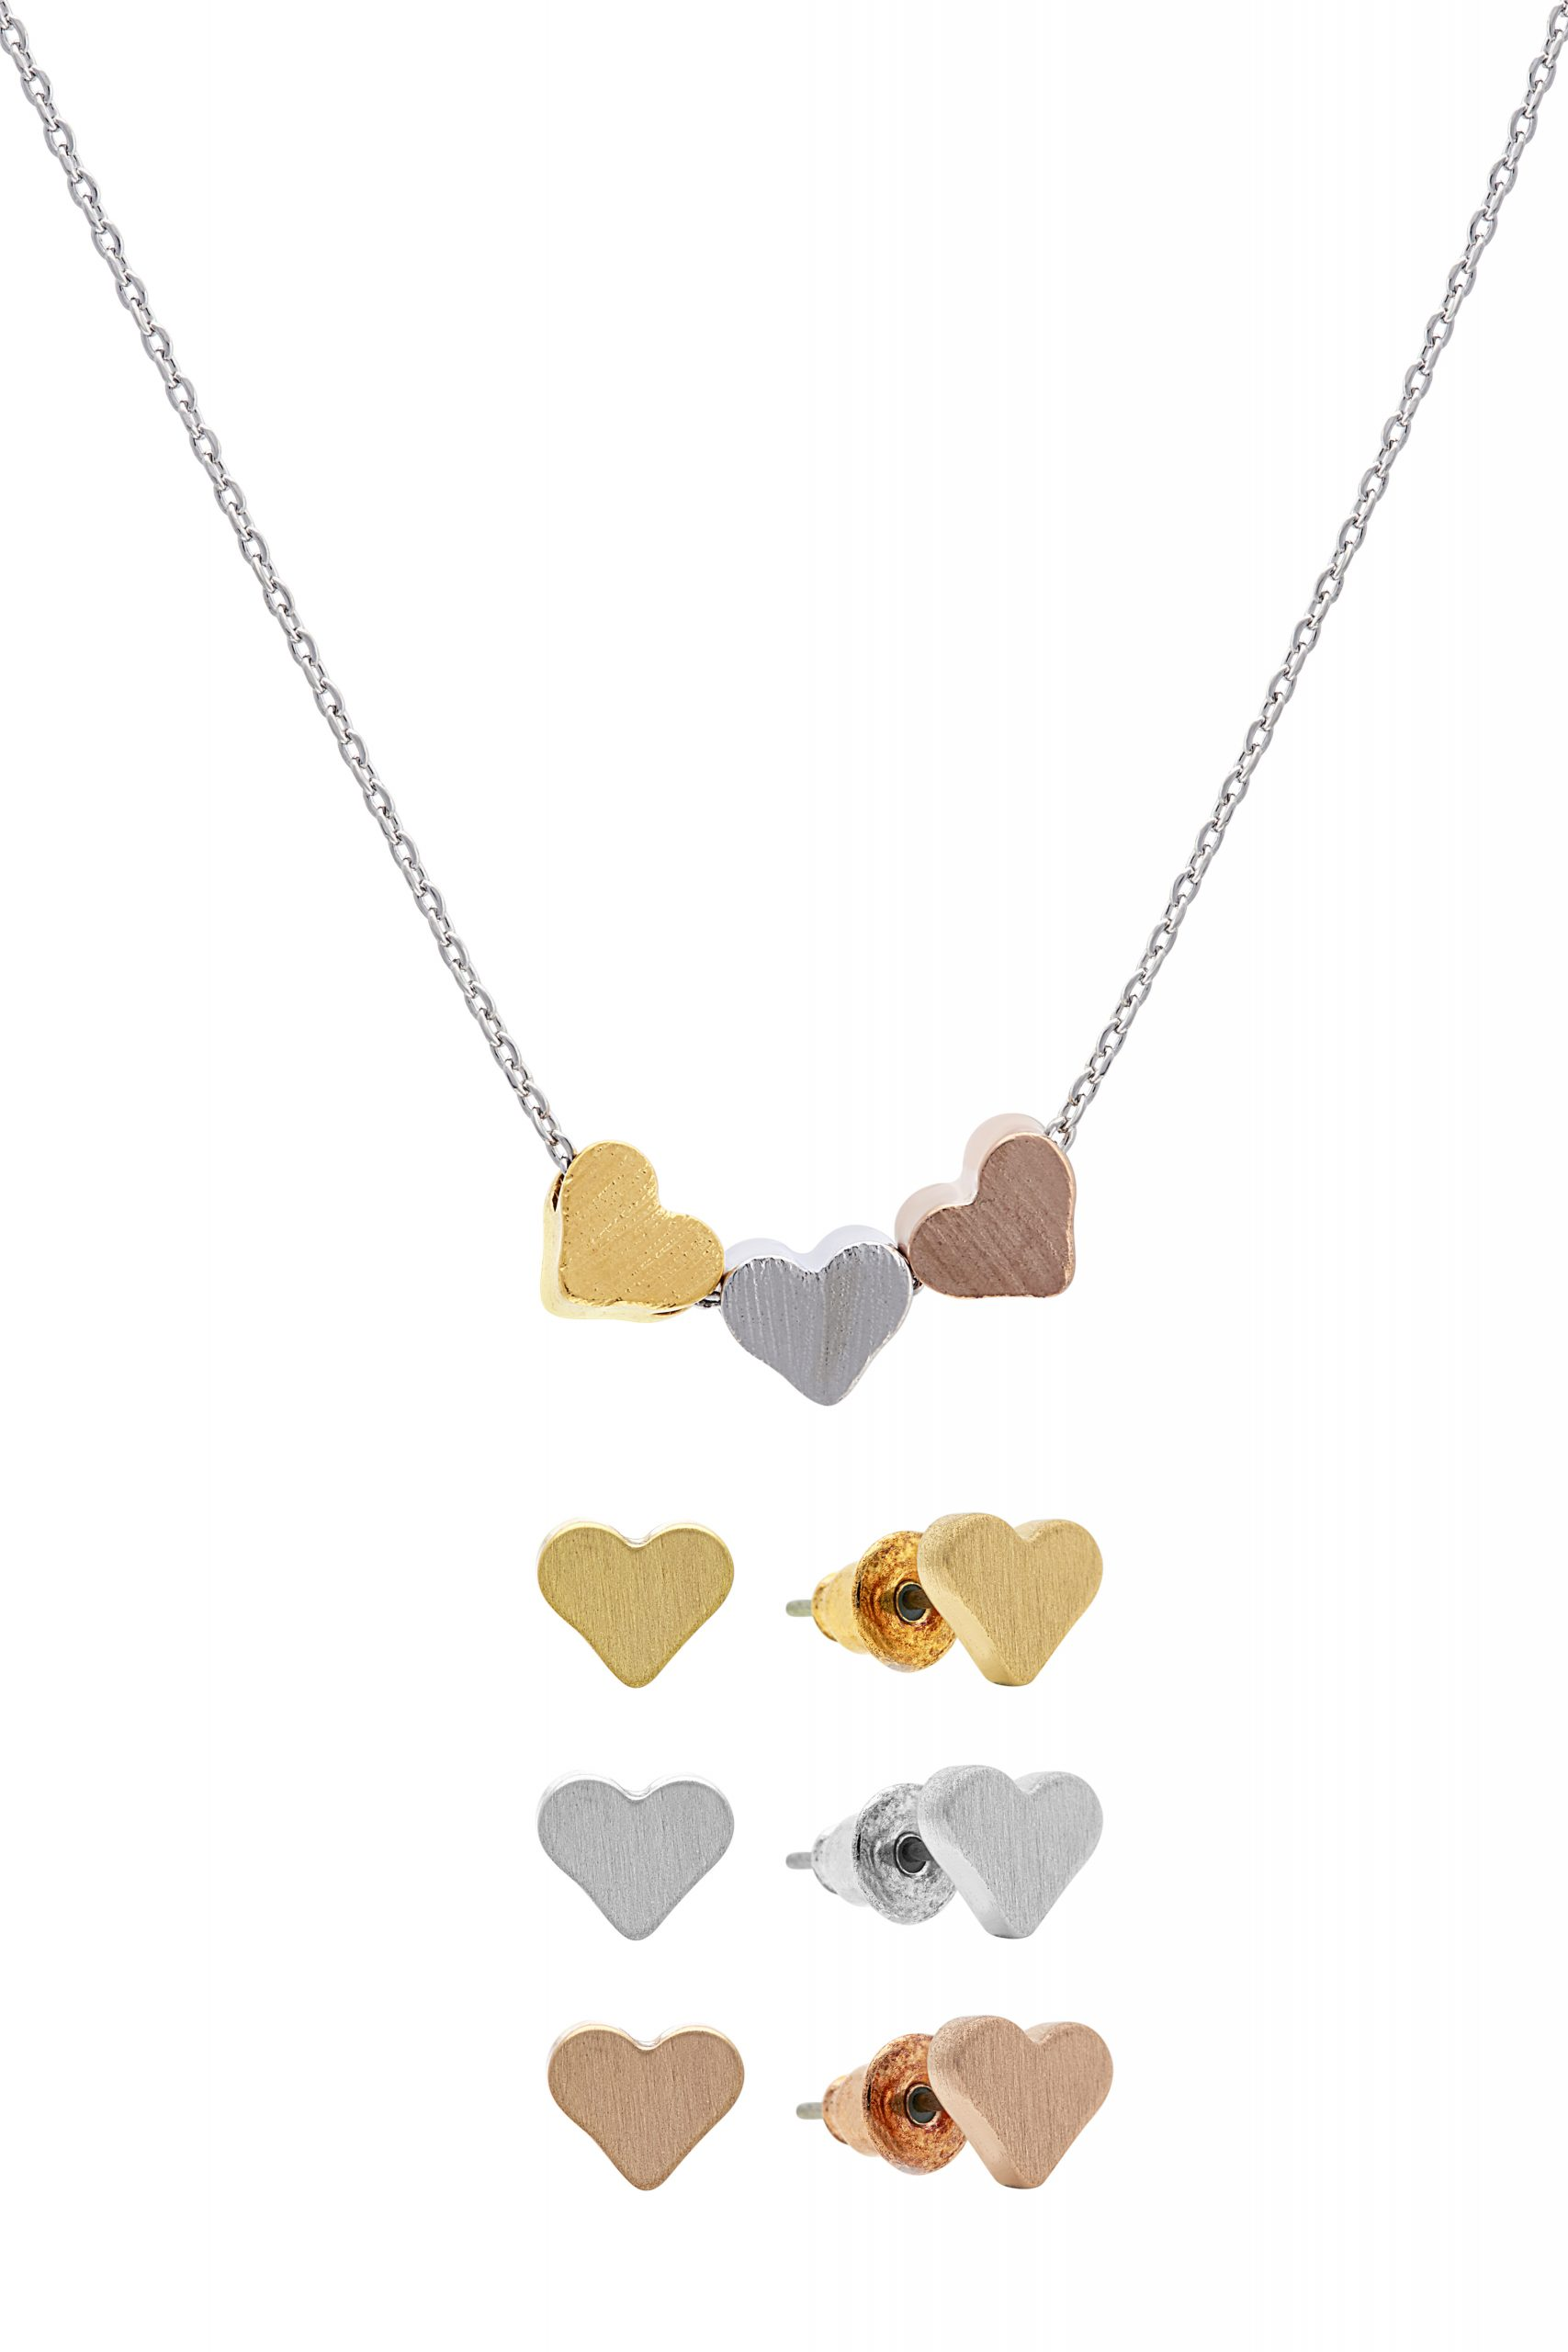 Heart And Soul Necklace and Earrings Set